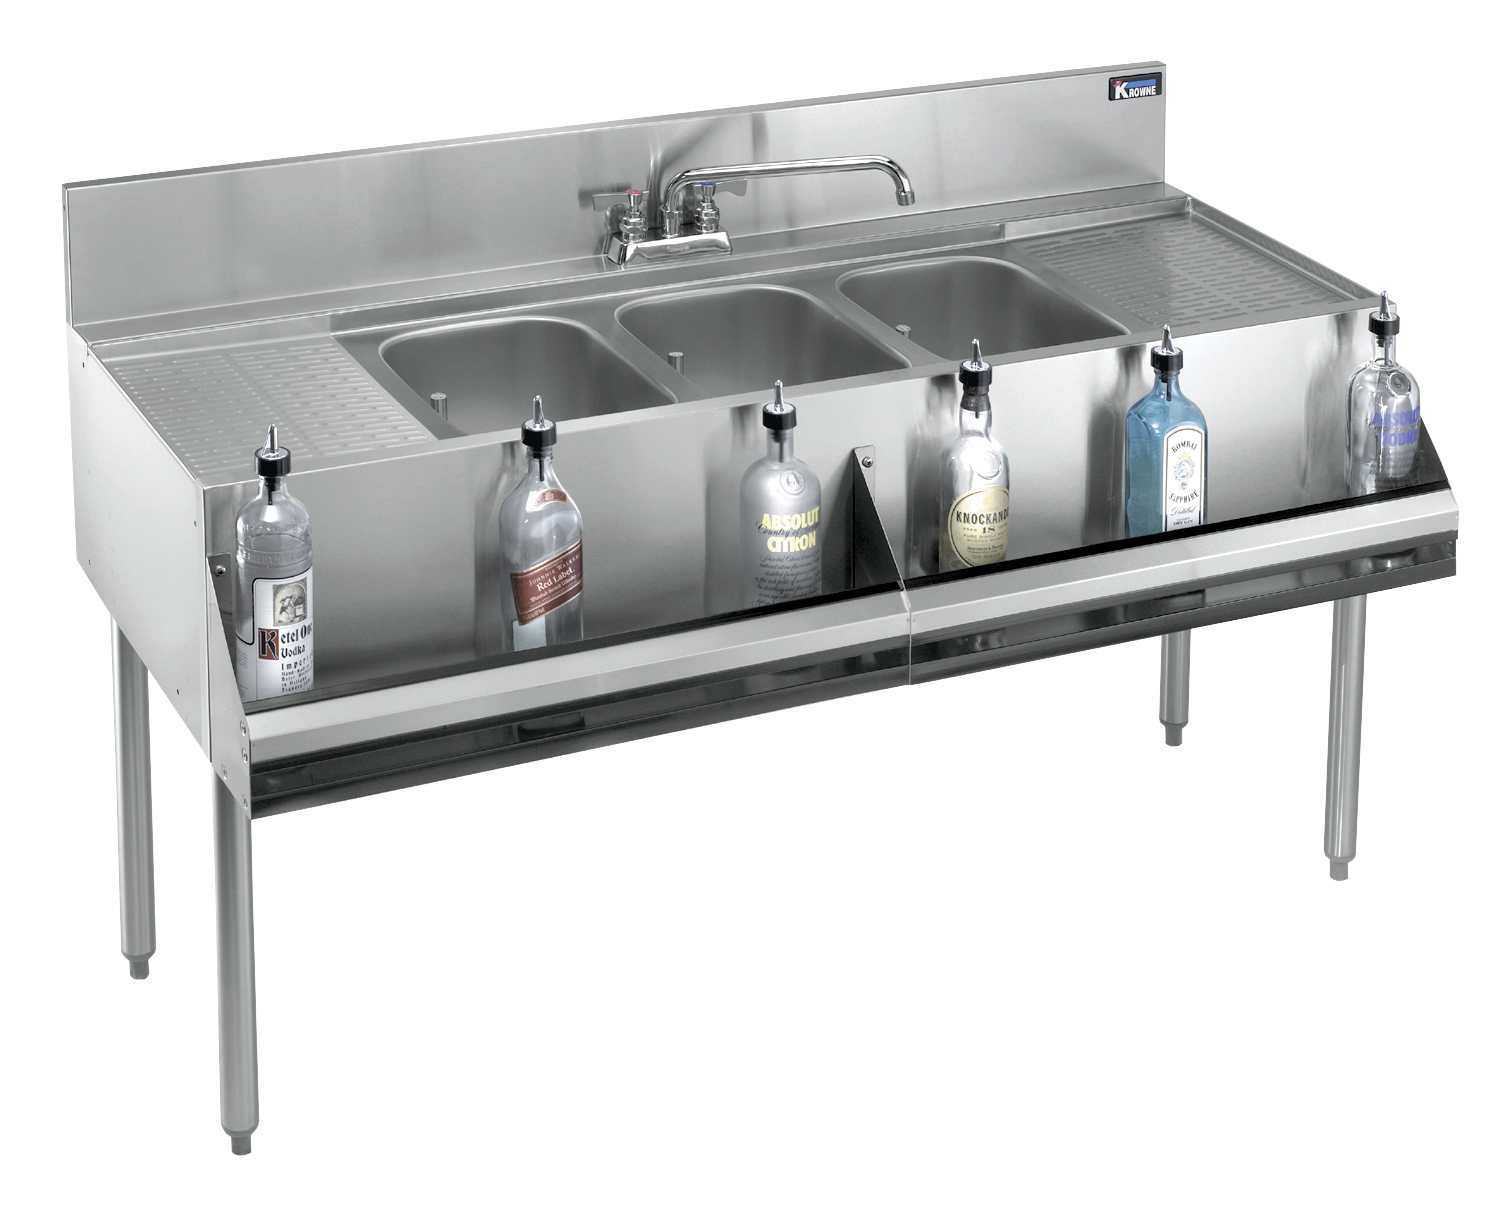 Krowne Metal KR19-63C underbar sink units